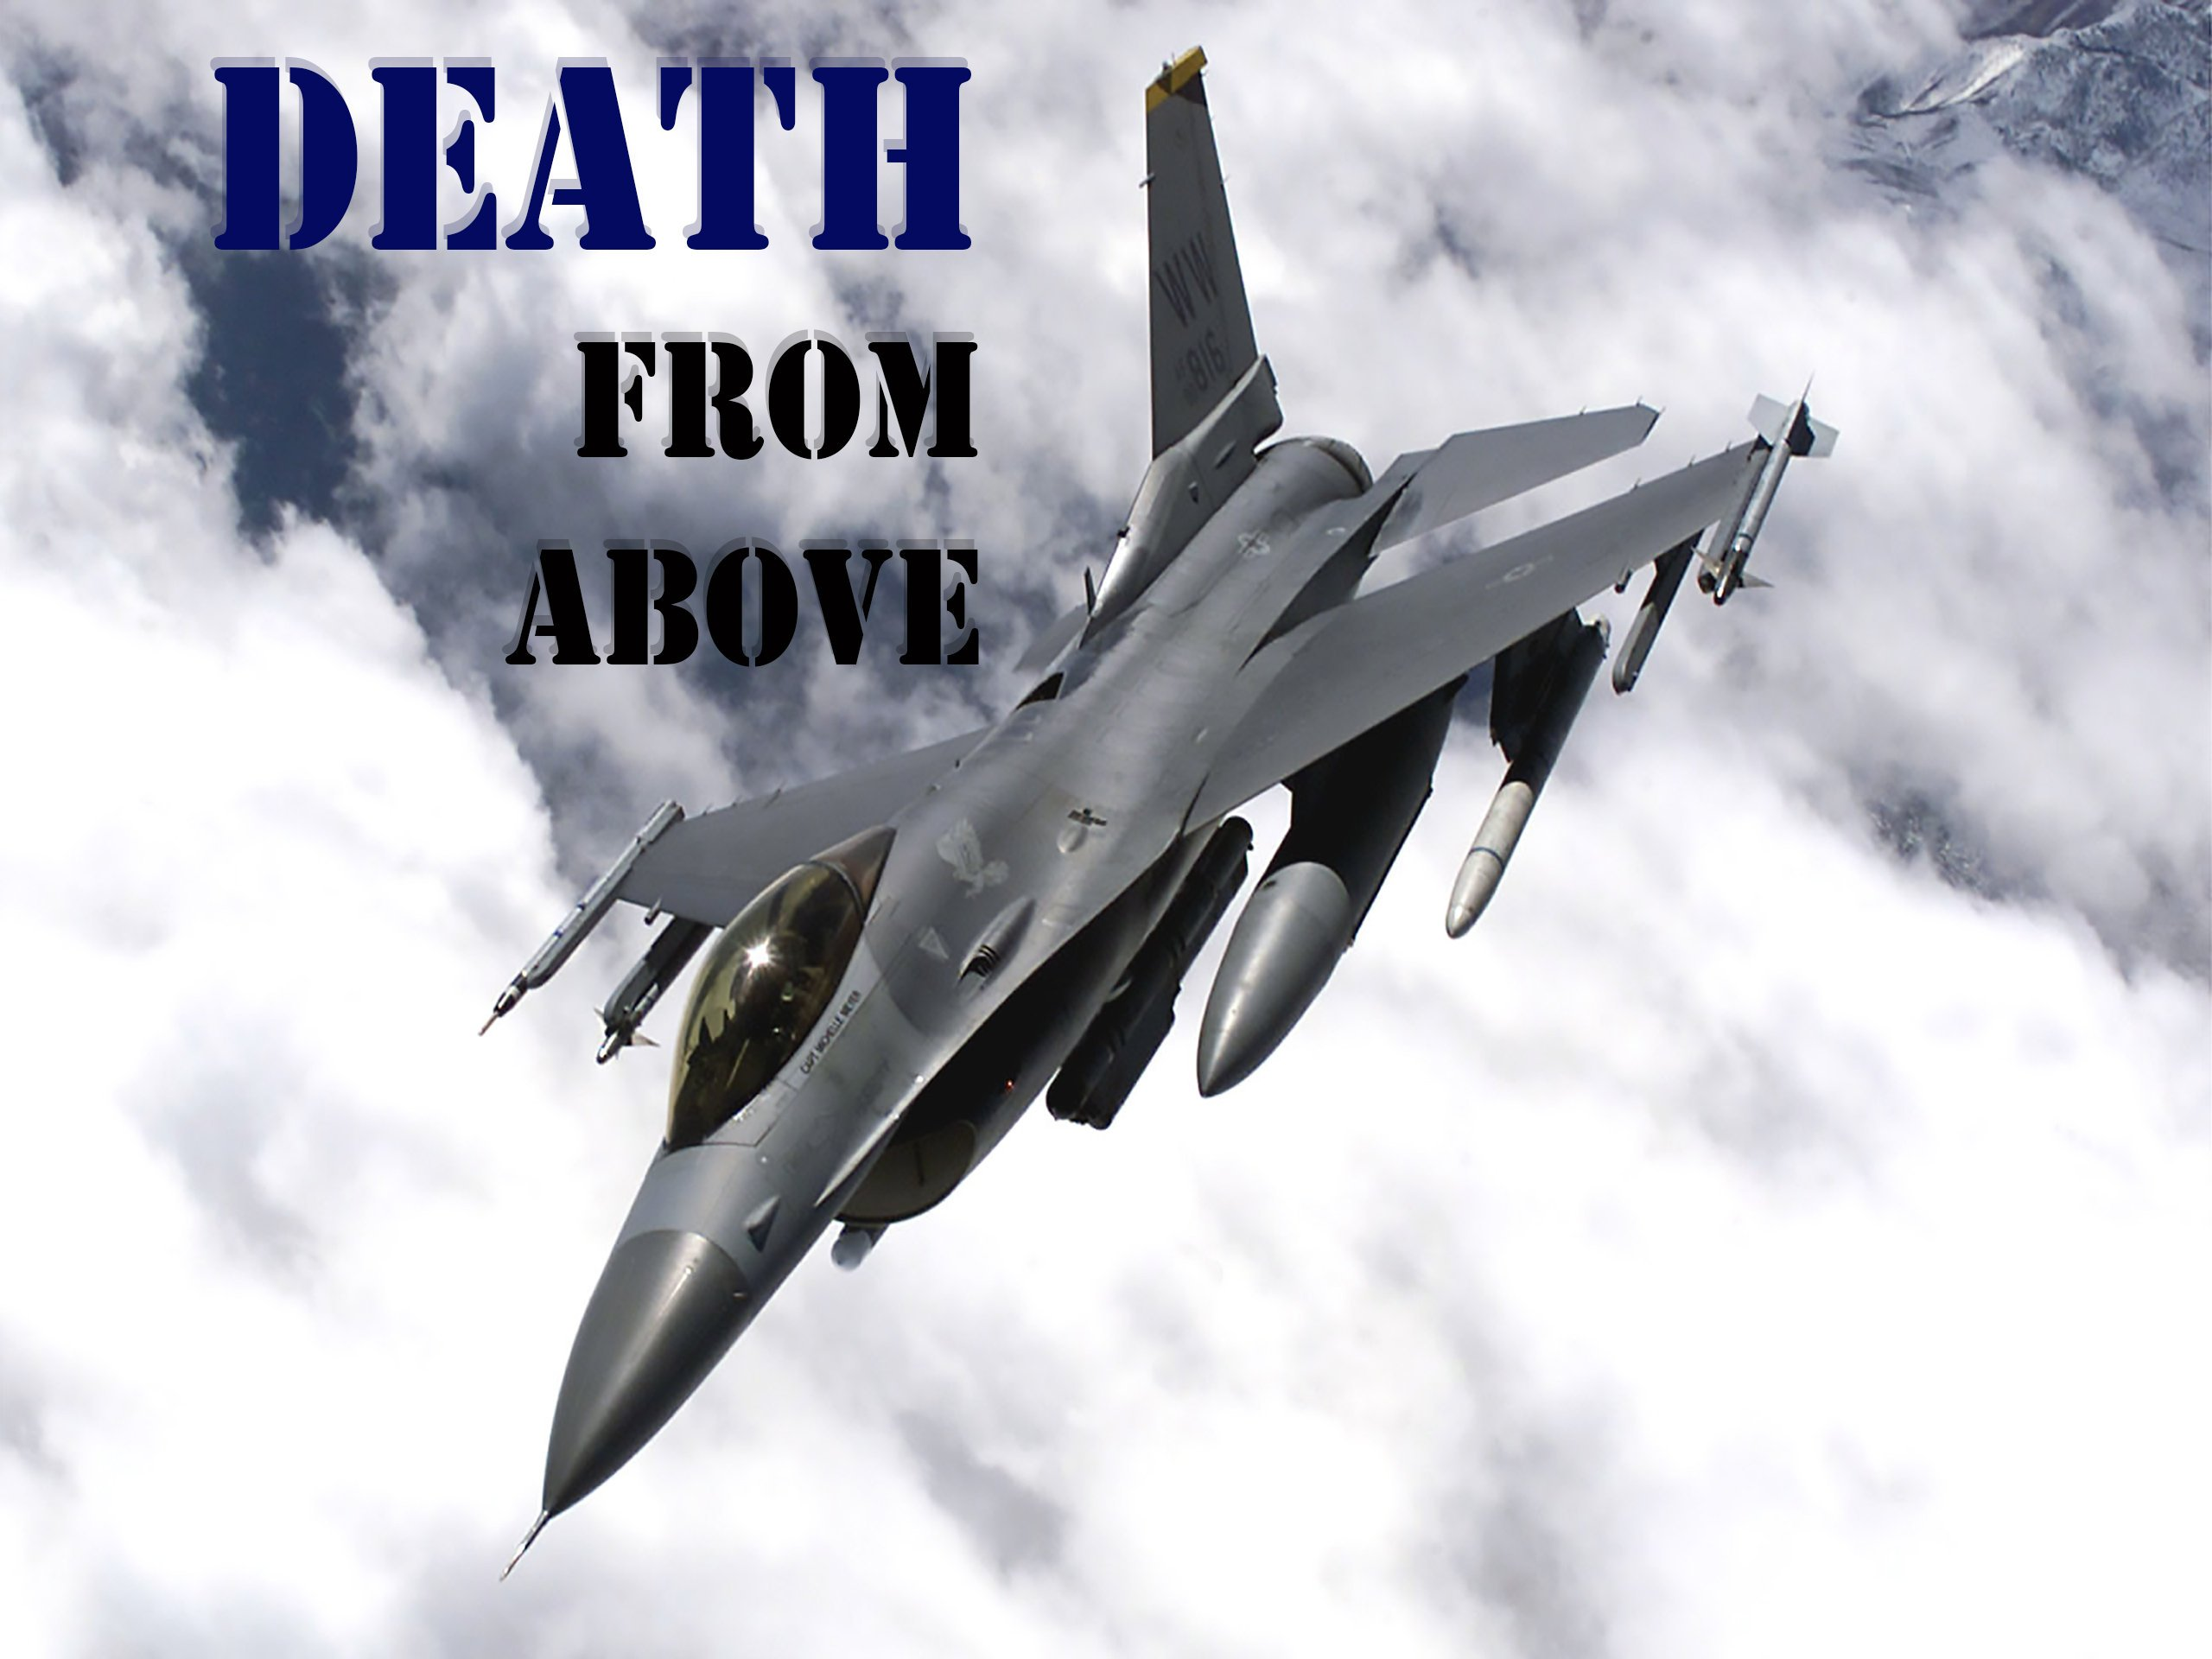 Amazon.com: Watch Death From Above - Air War Against Terror Season 1 |  Prime Video